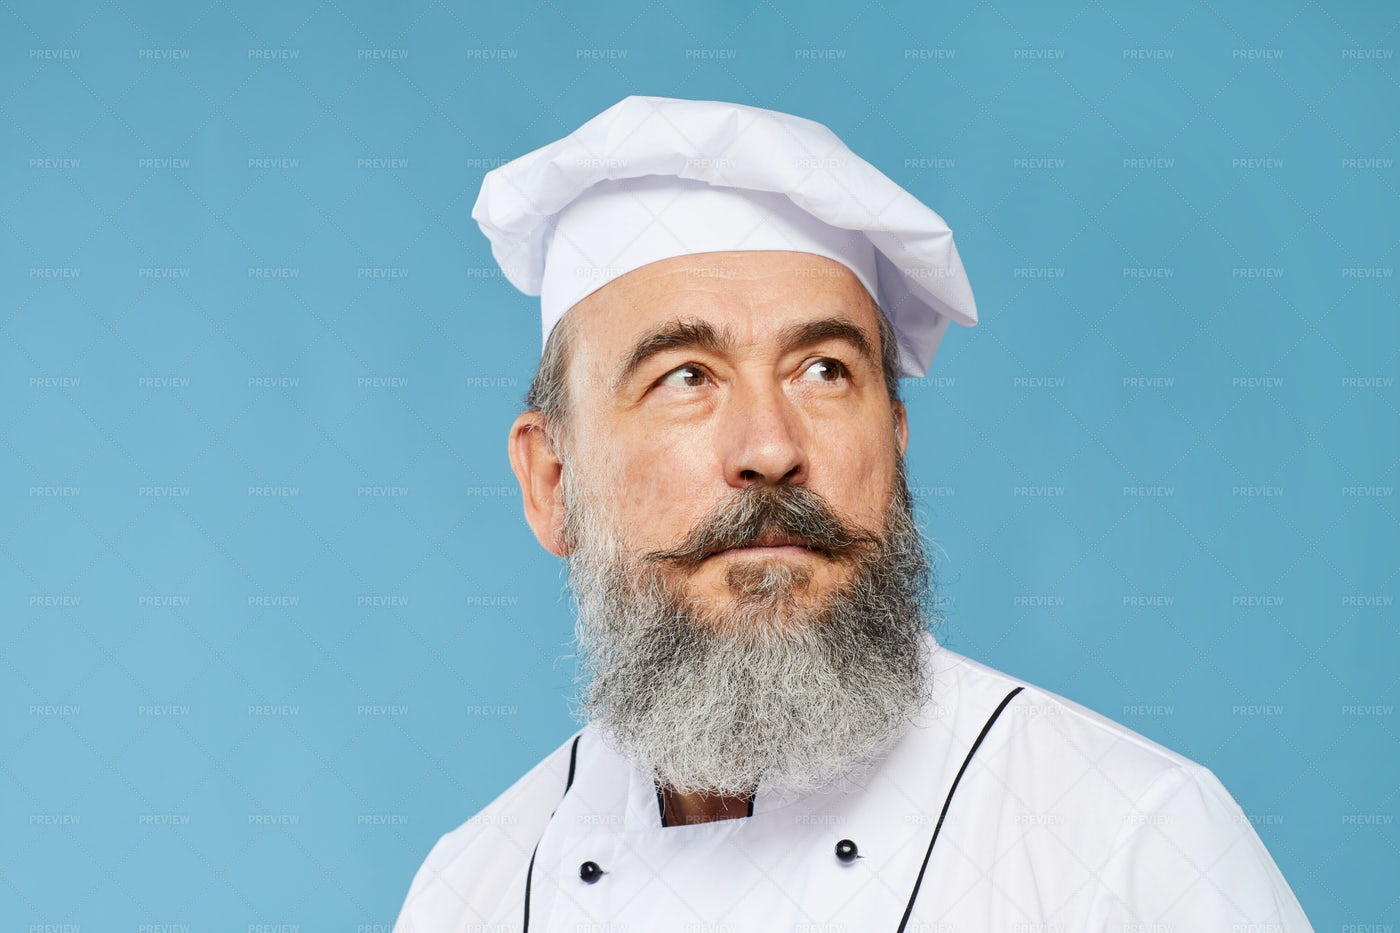 Daydreaming Senior Chef On Blue: Stock Photos